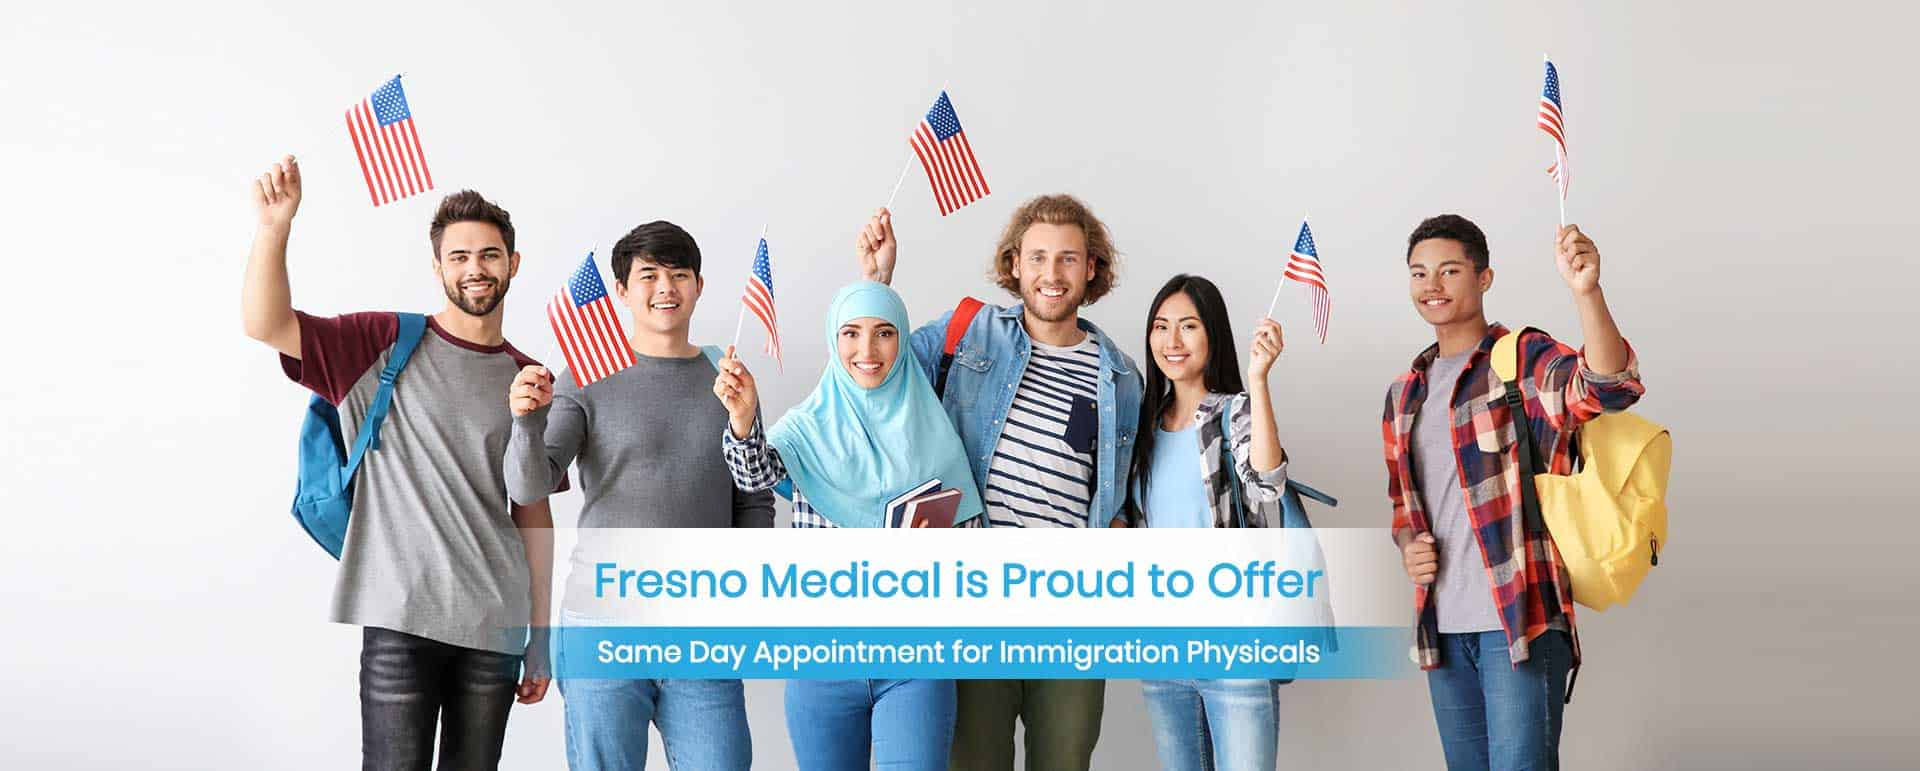 Fresno Medical Center Is Proud to Offer Same Day Appointment for Immigration Physicals.